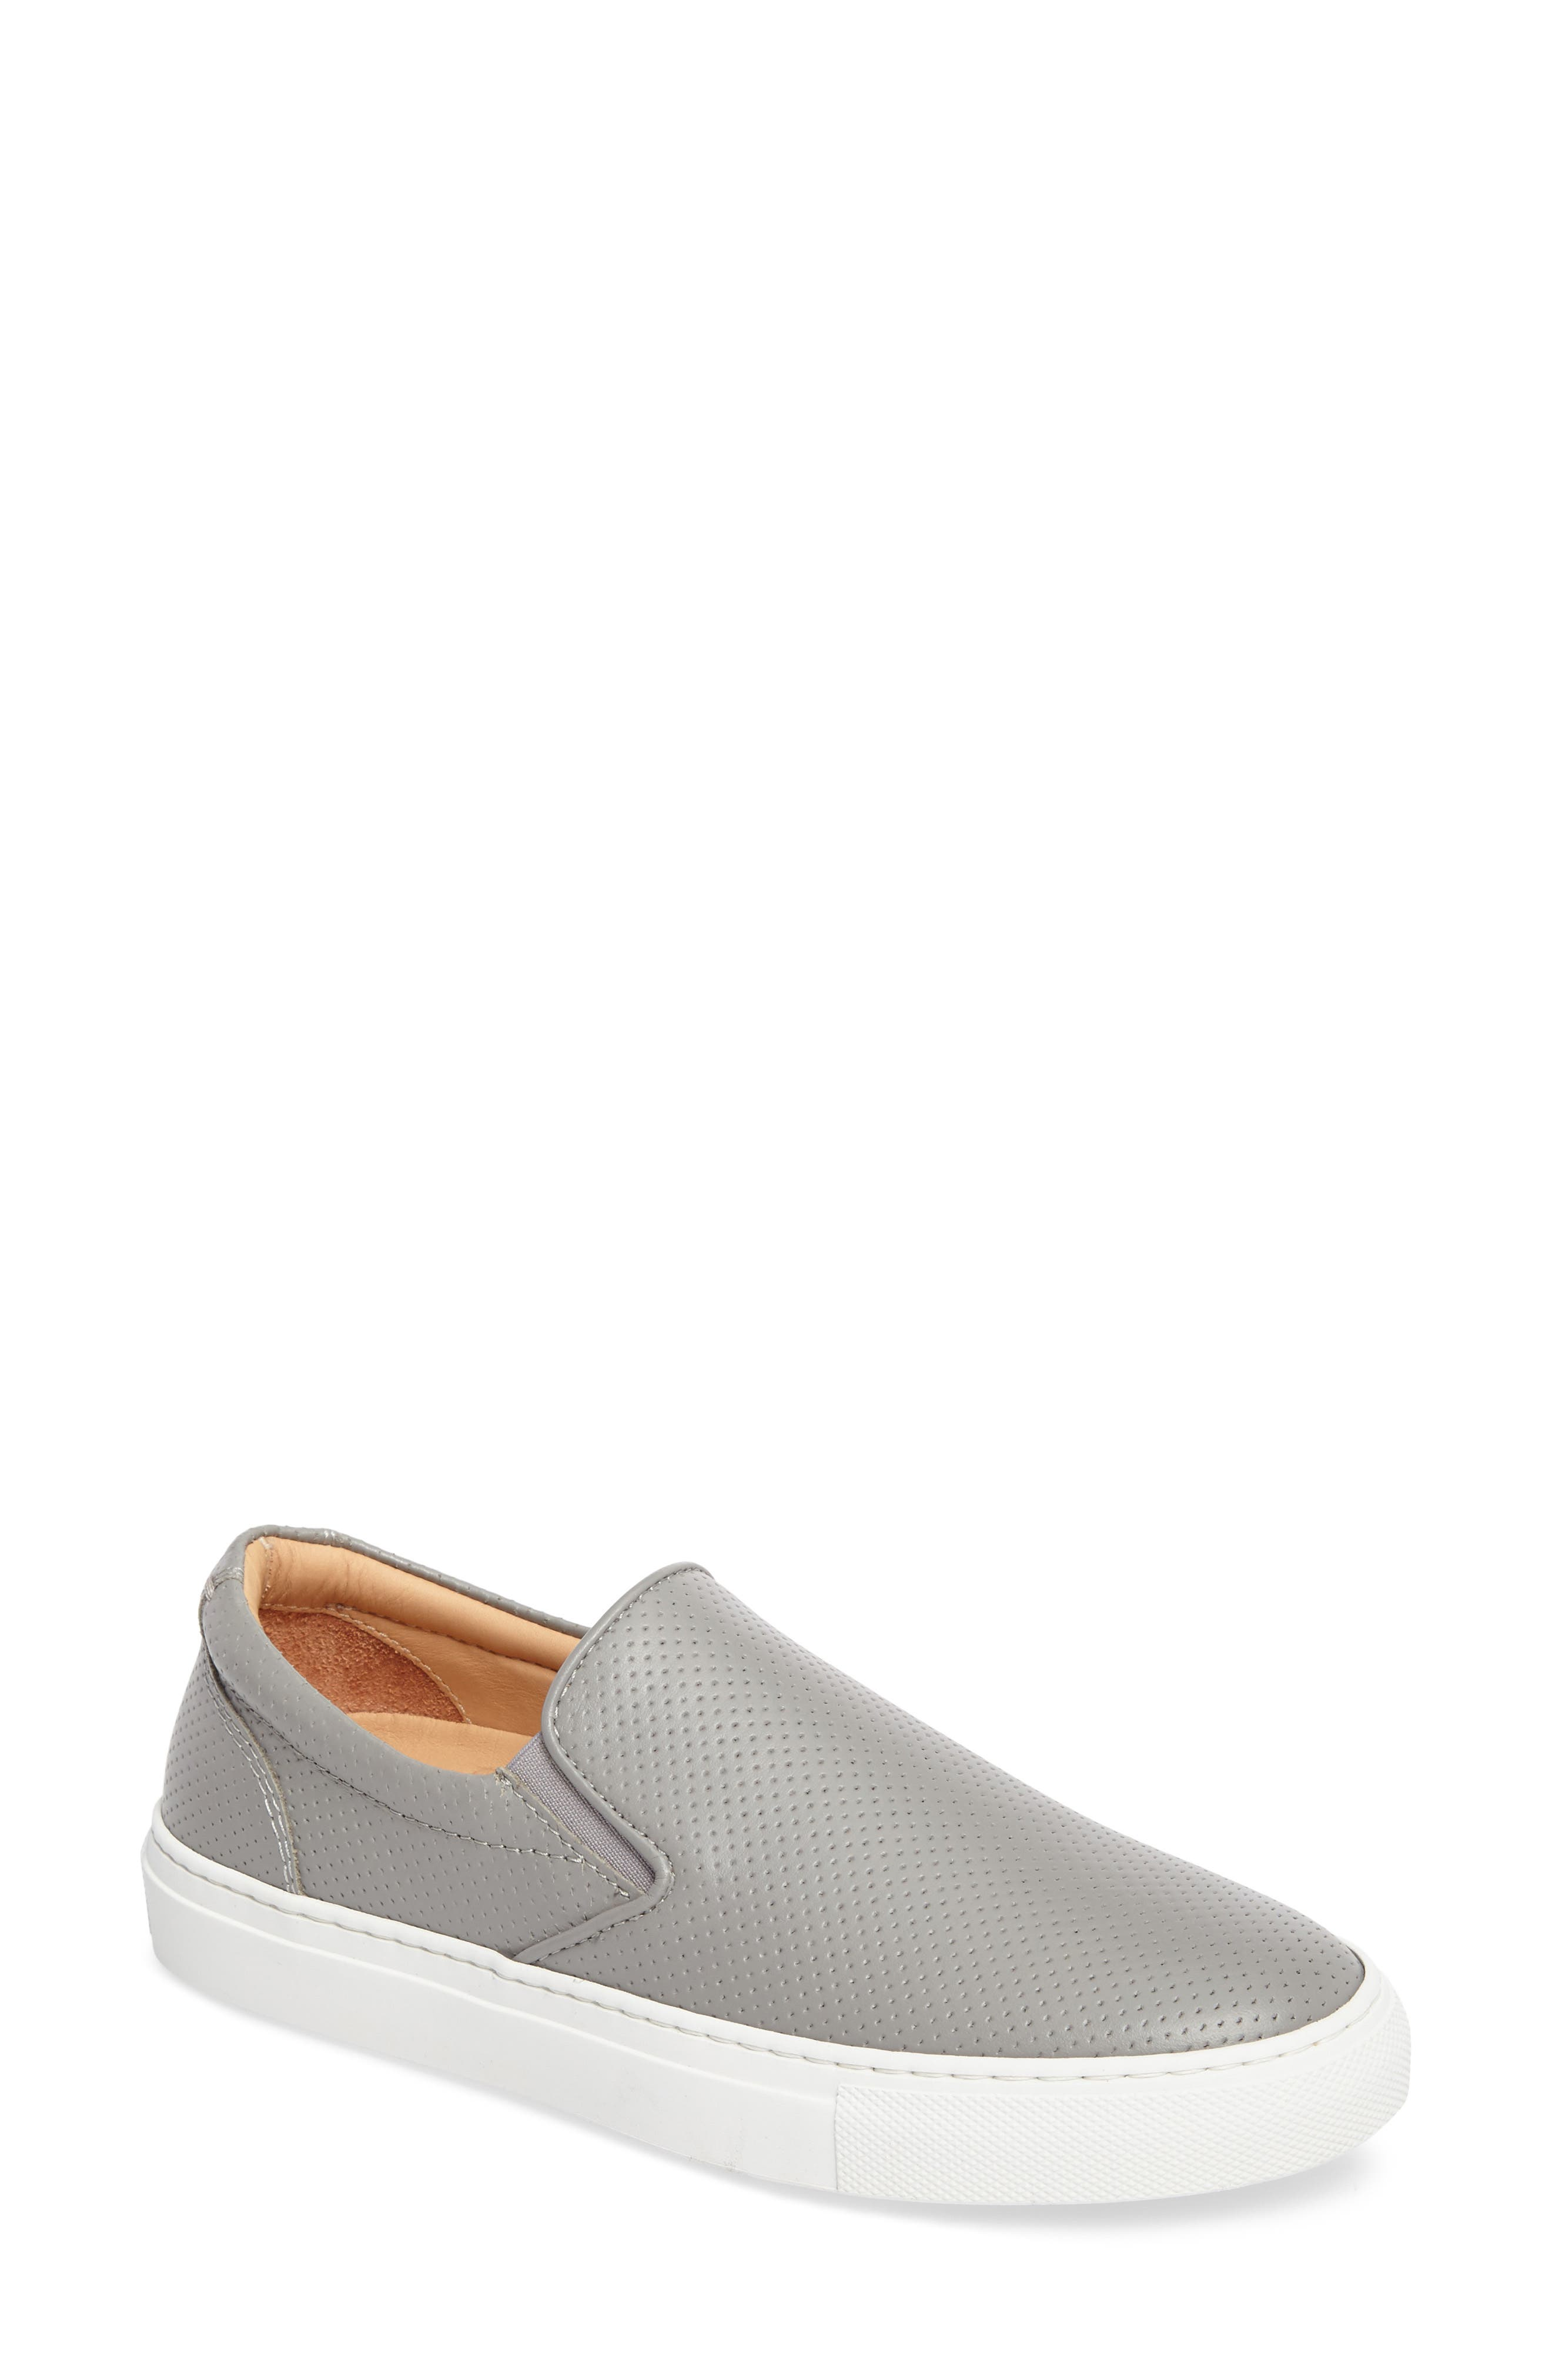 Wooster Slip-On Sneaker,                             Main thumbnail 1, color,                             GREY PERFORATED